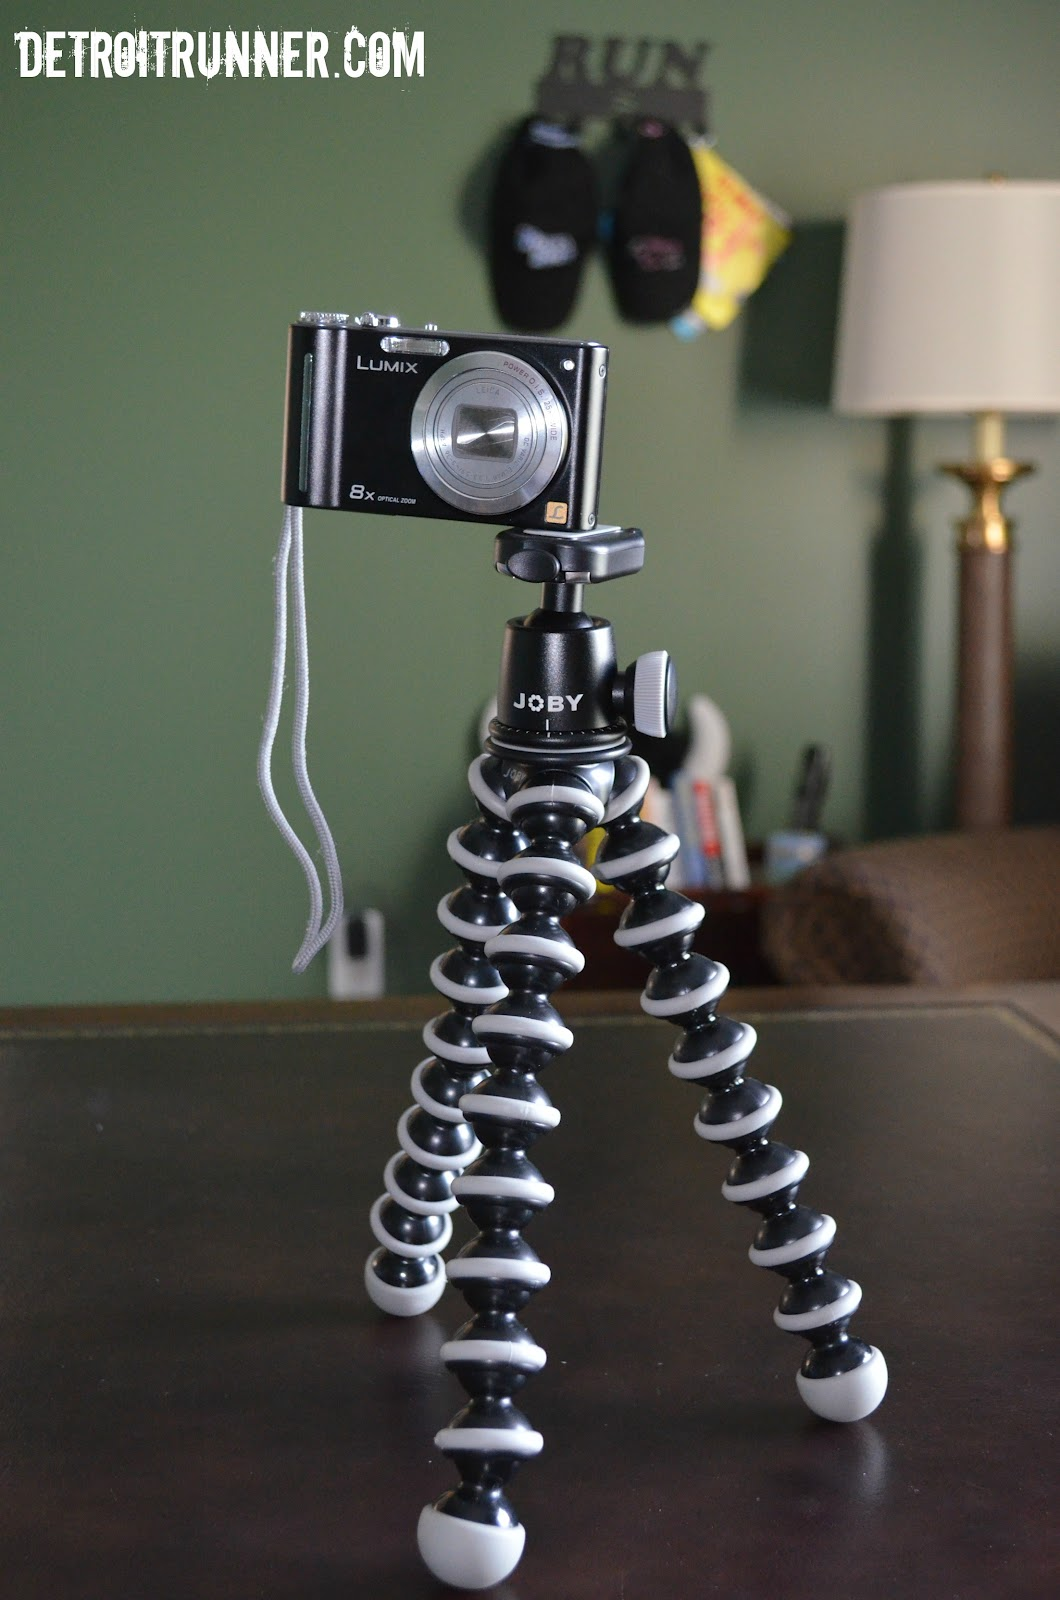 Detroit Runner Joby Gorillapod Slr Zoom Ballhead Review Small Other Models Available For Smaller Cameras Too